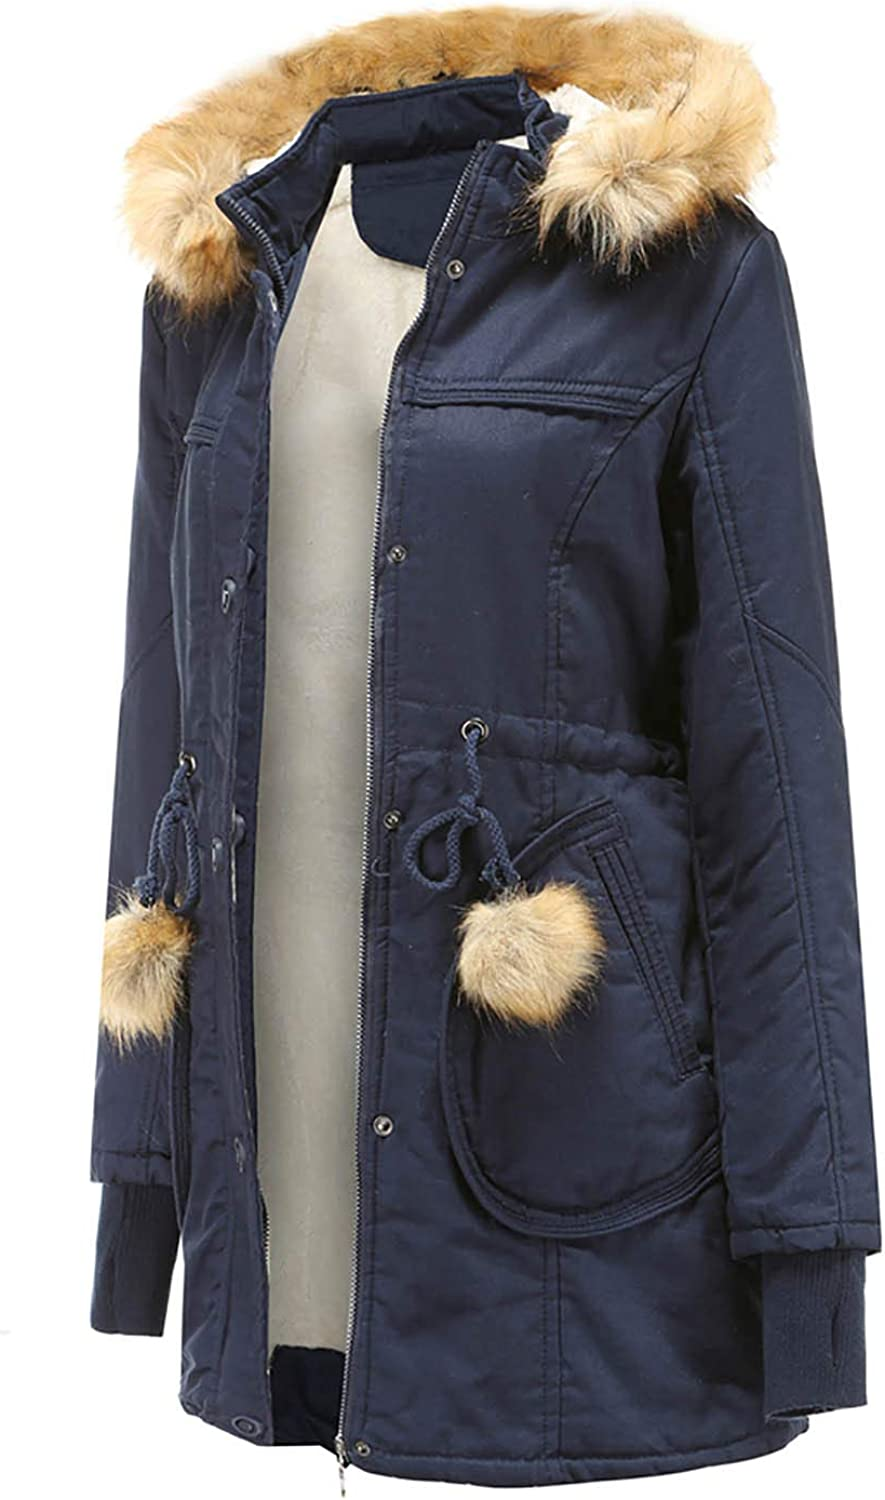 DAIFINEY Damen Mantel Jacke Parka Winterparka mit Kapuze warm gefüttert Wintermantel Winterjacke Winter Coat Outwear 2-blau/Dark Blue